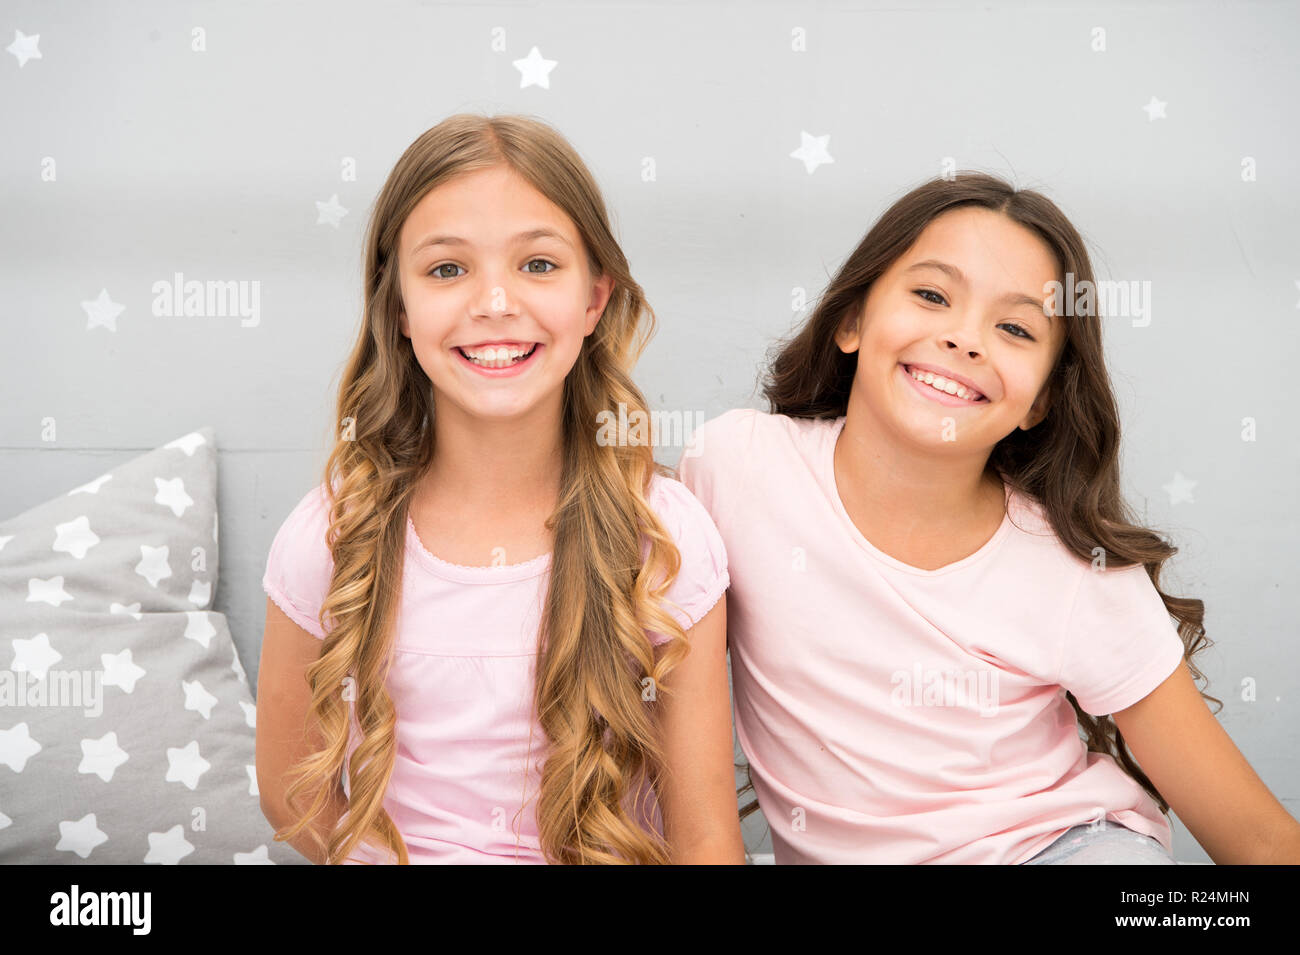 Girls children with long curly hair. Pajamas party concept. Girls just want to have fun. Girlish secrets honest and sincere. Friends kids have nice time pleasant leisure. Best friends forever. Stock Photo